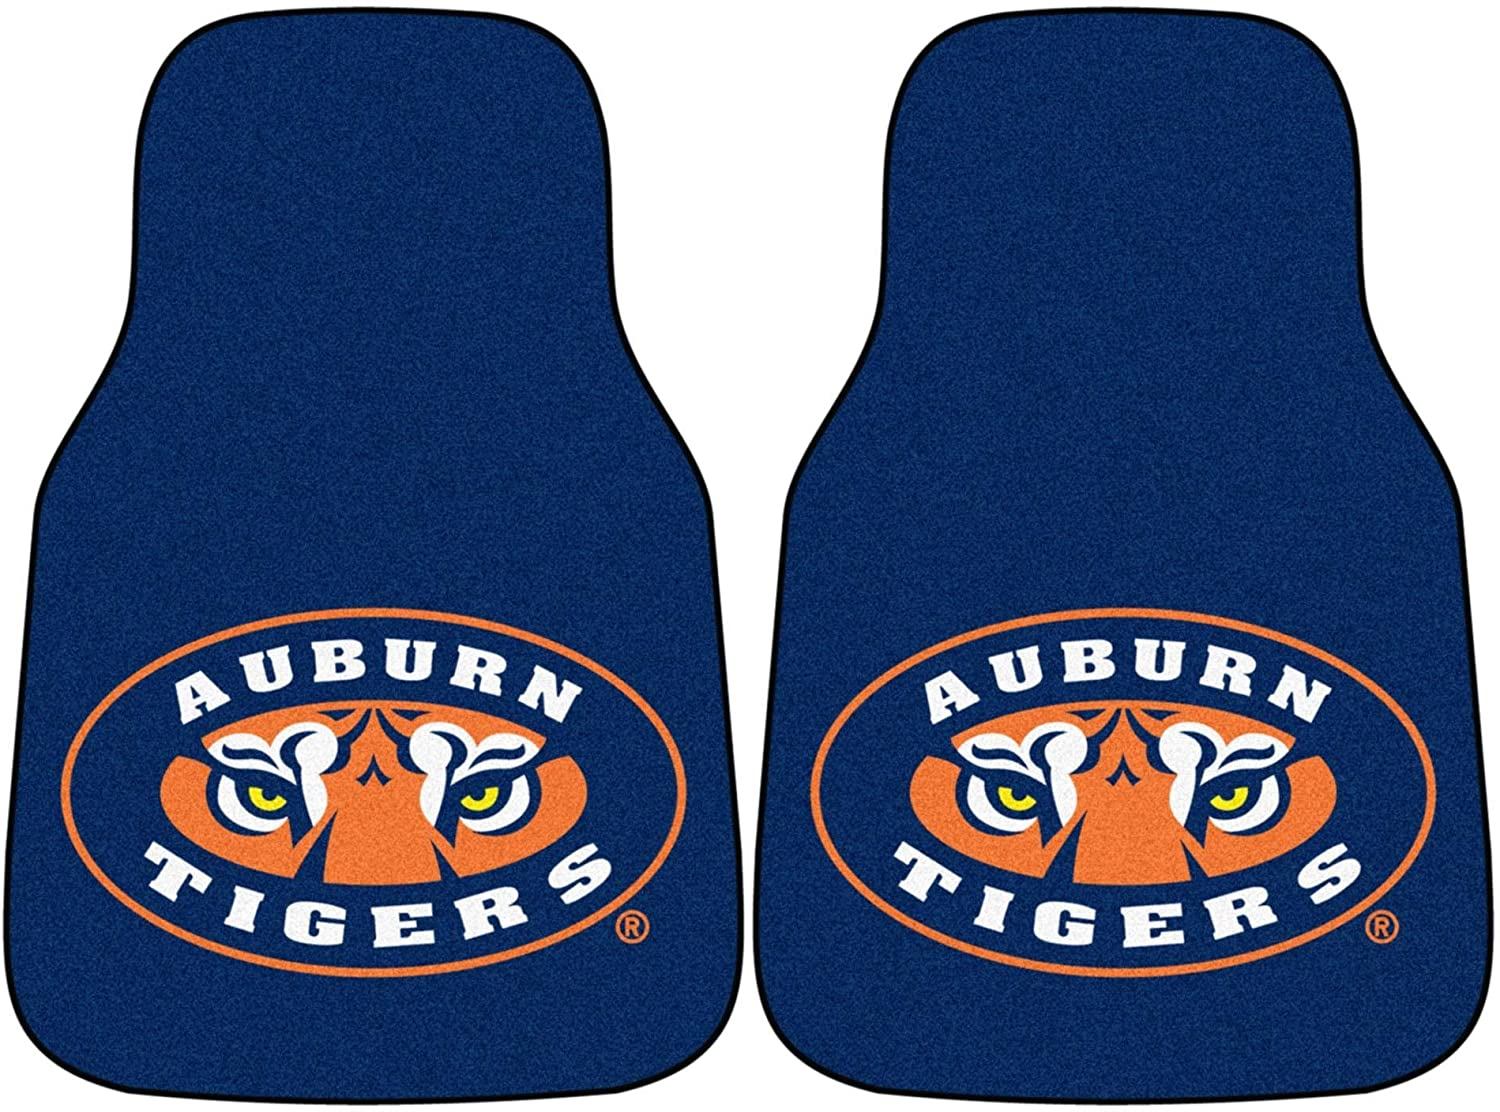 Fanmats Auburn Tigers Universal Fit Carpet 2 Pc Car Floor Mat (Rug)